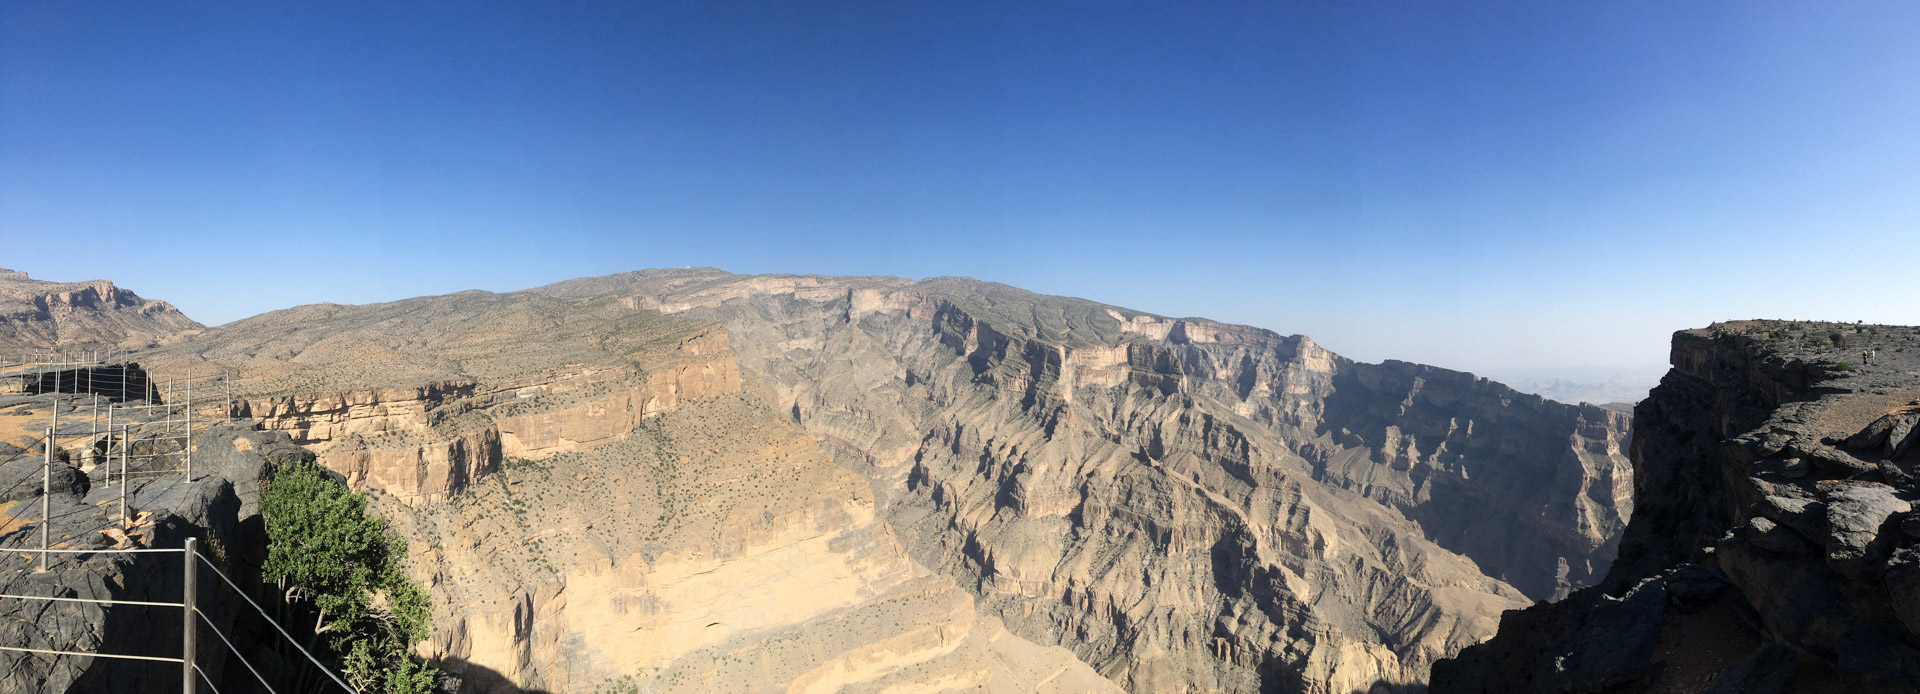 View from Jebel Shams Plateau - Incredible.